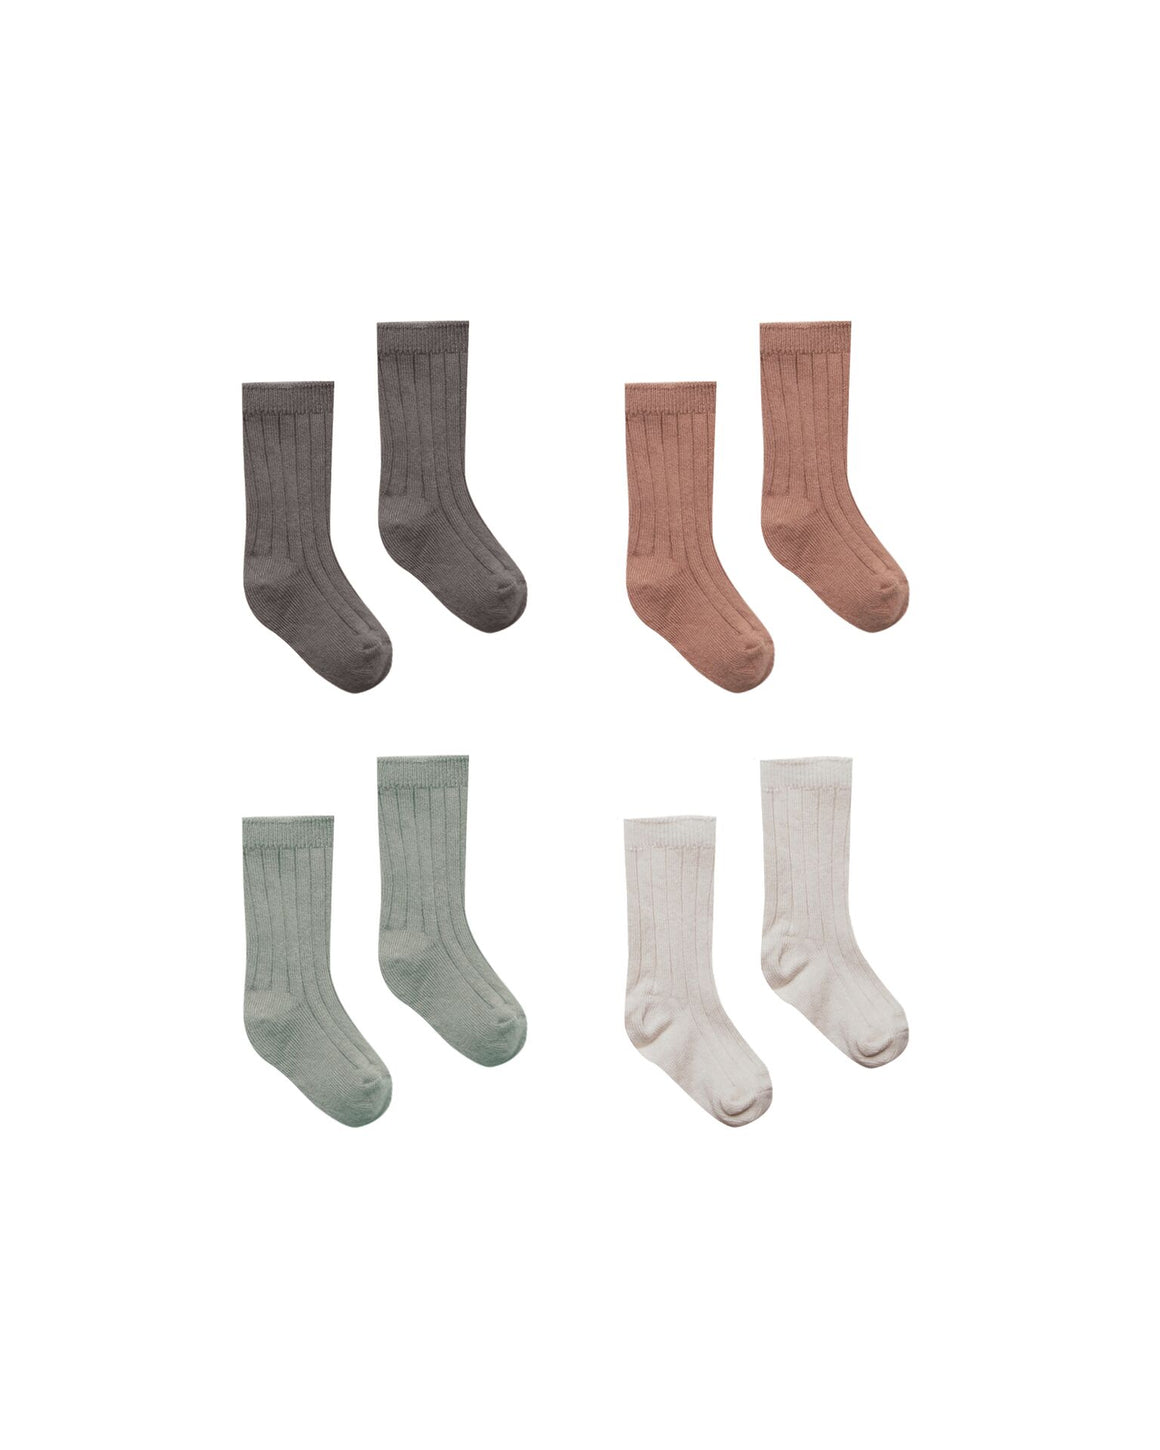 Quincy Mae Baby Socks Coal Clay Eucalyptus Stone (4 pack)